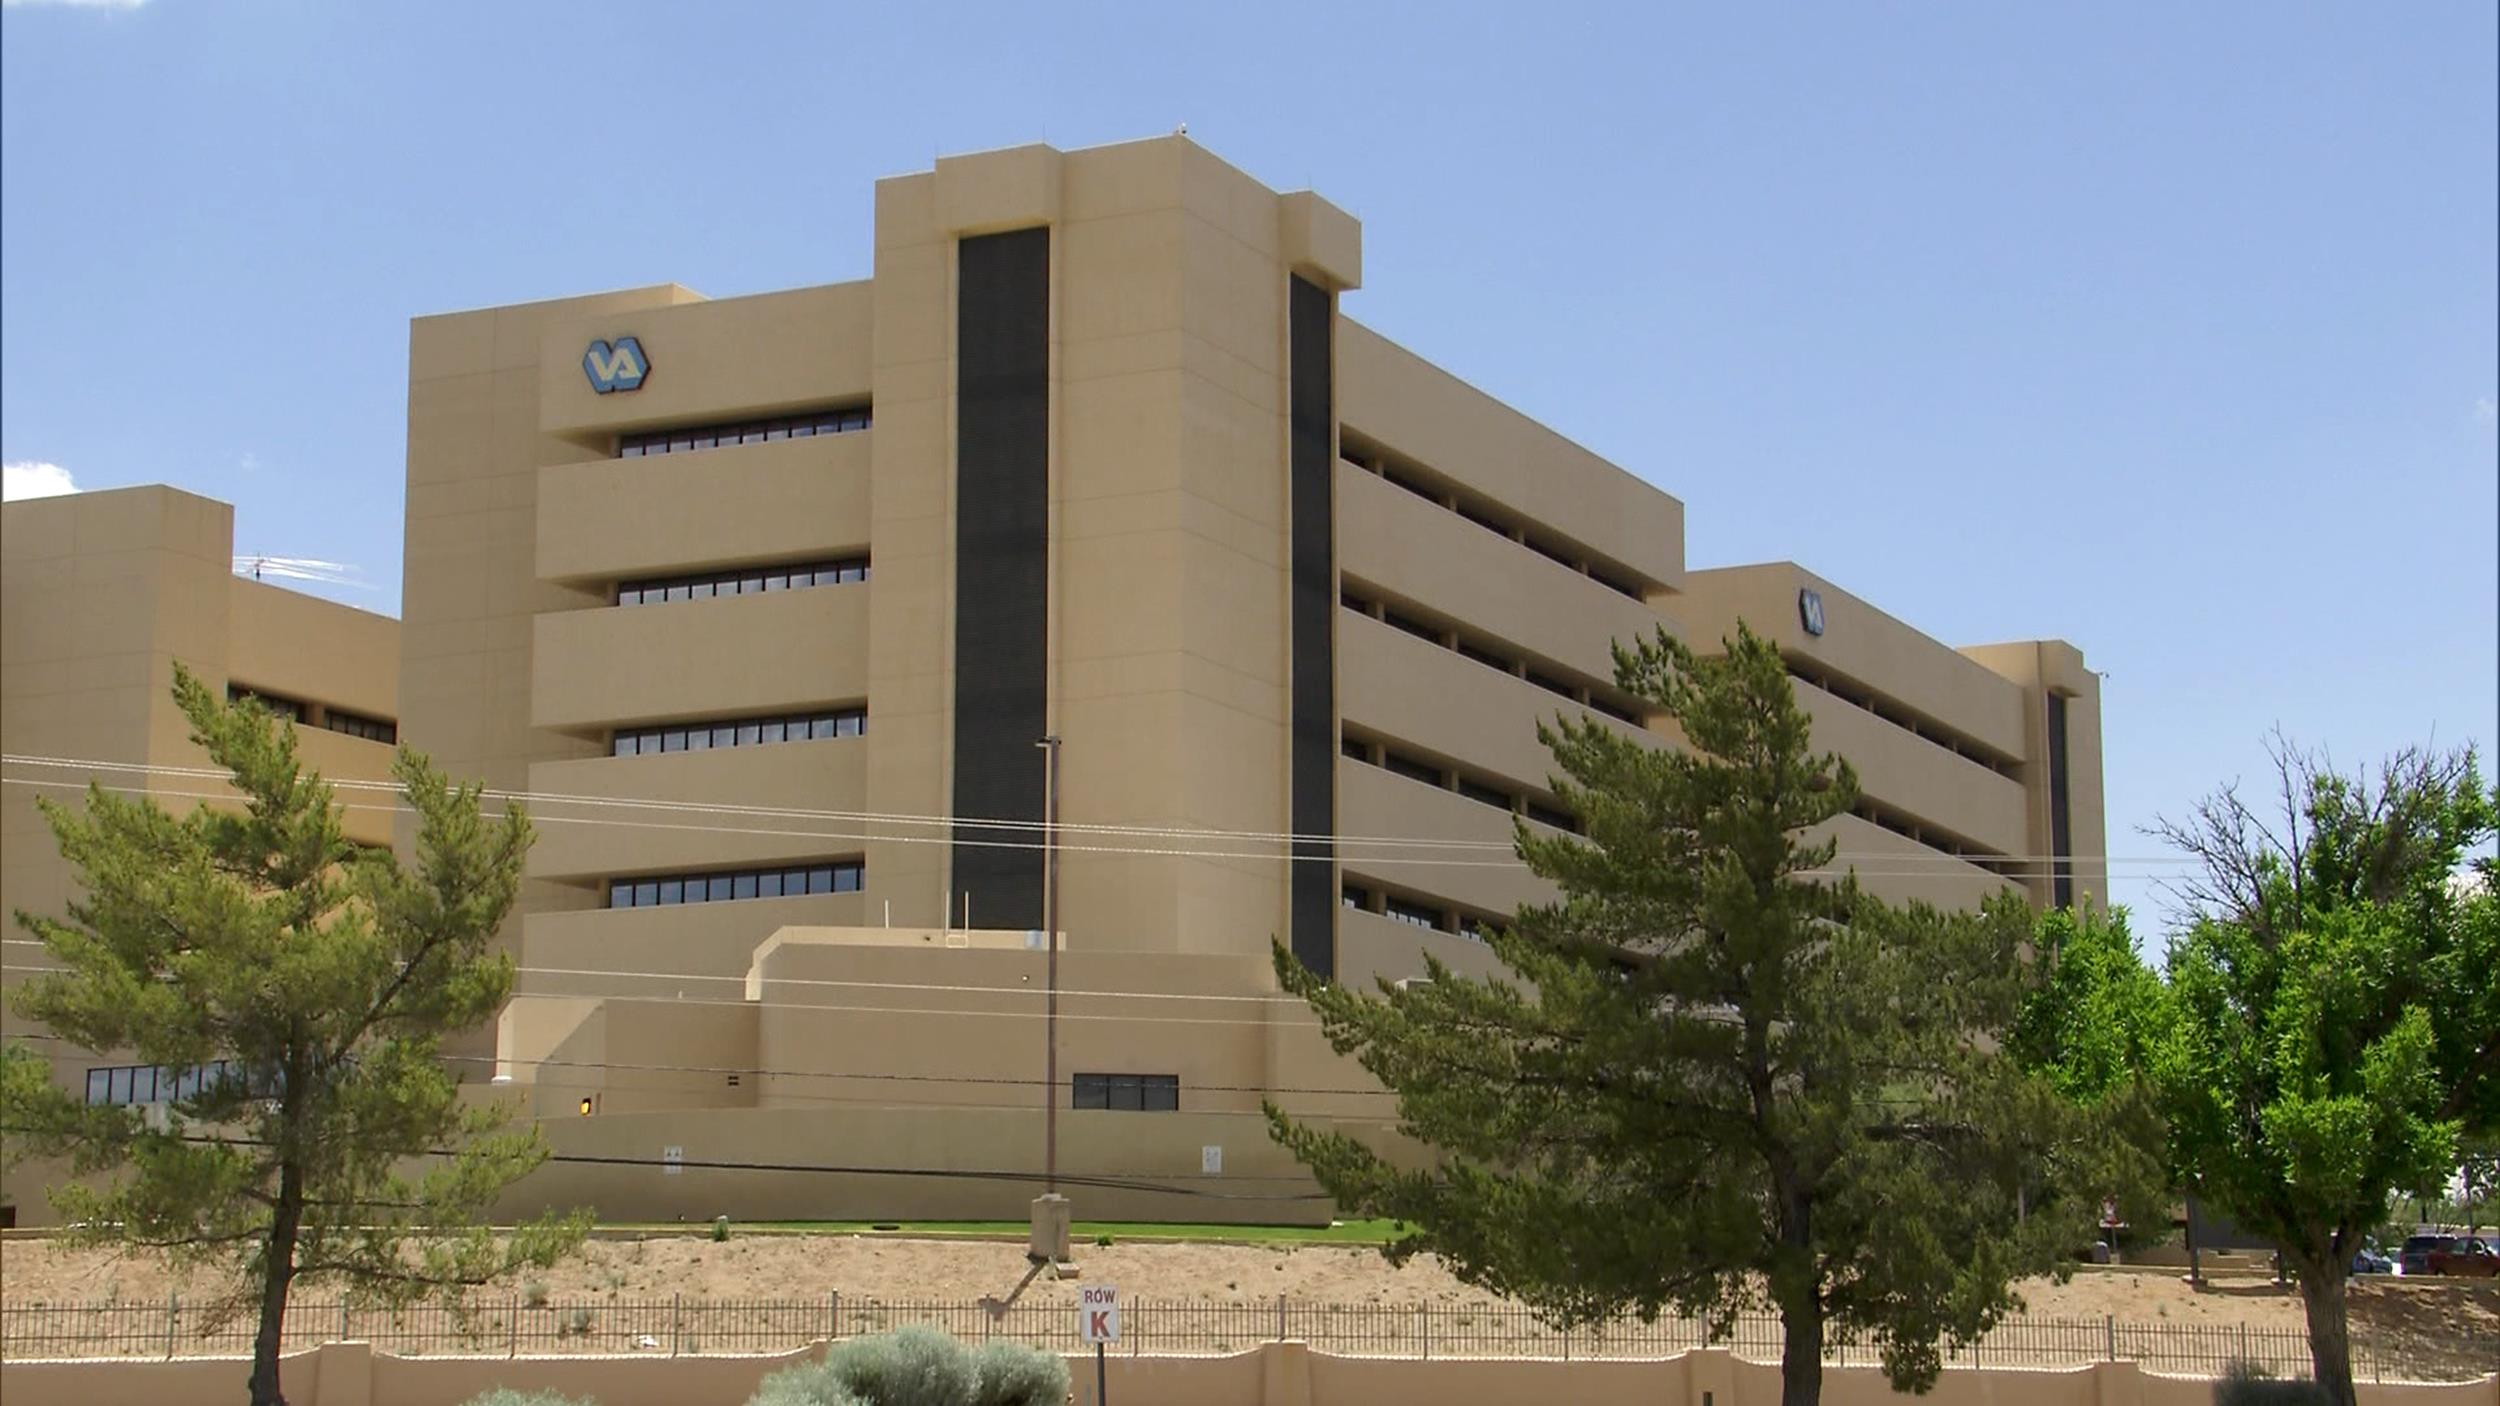 Image: The VA hospital in Albuquerque